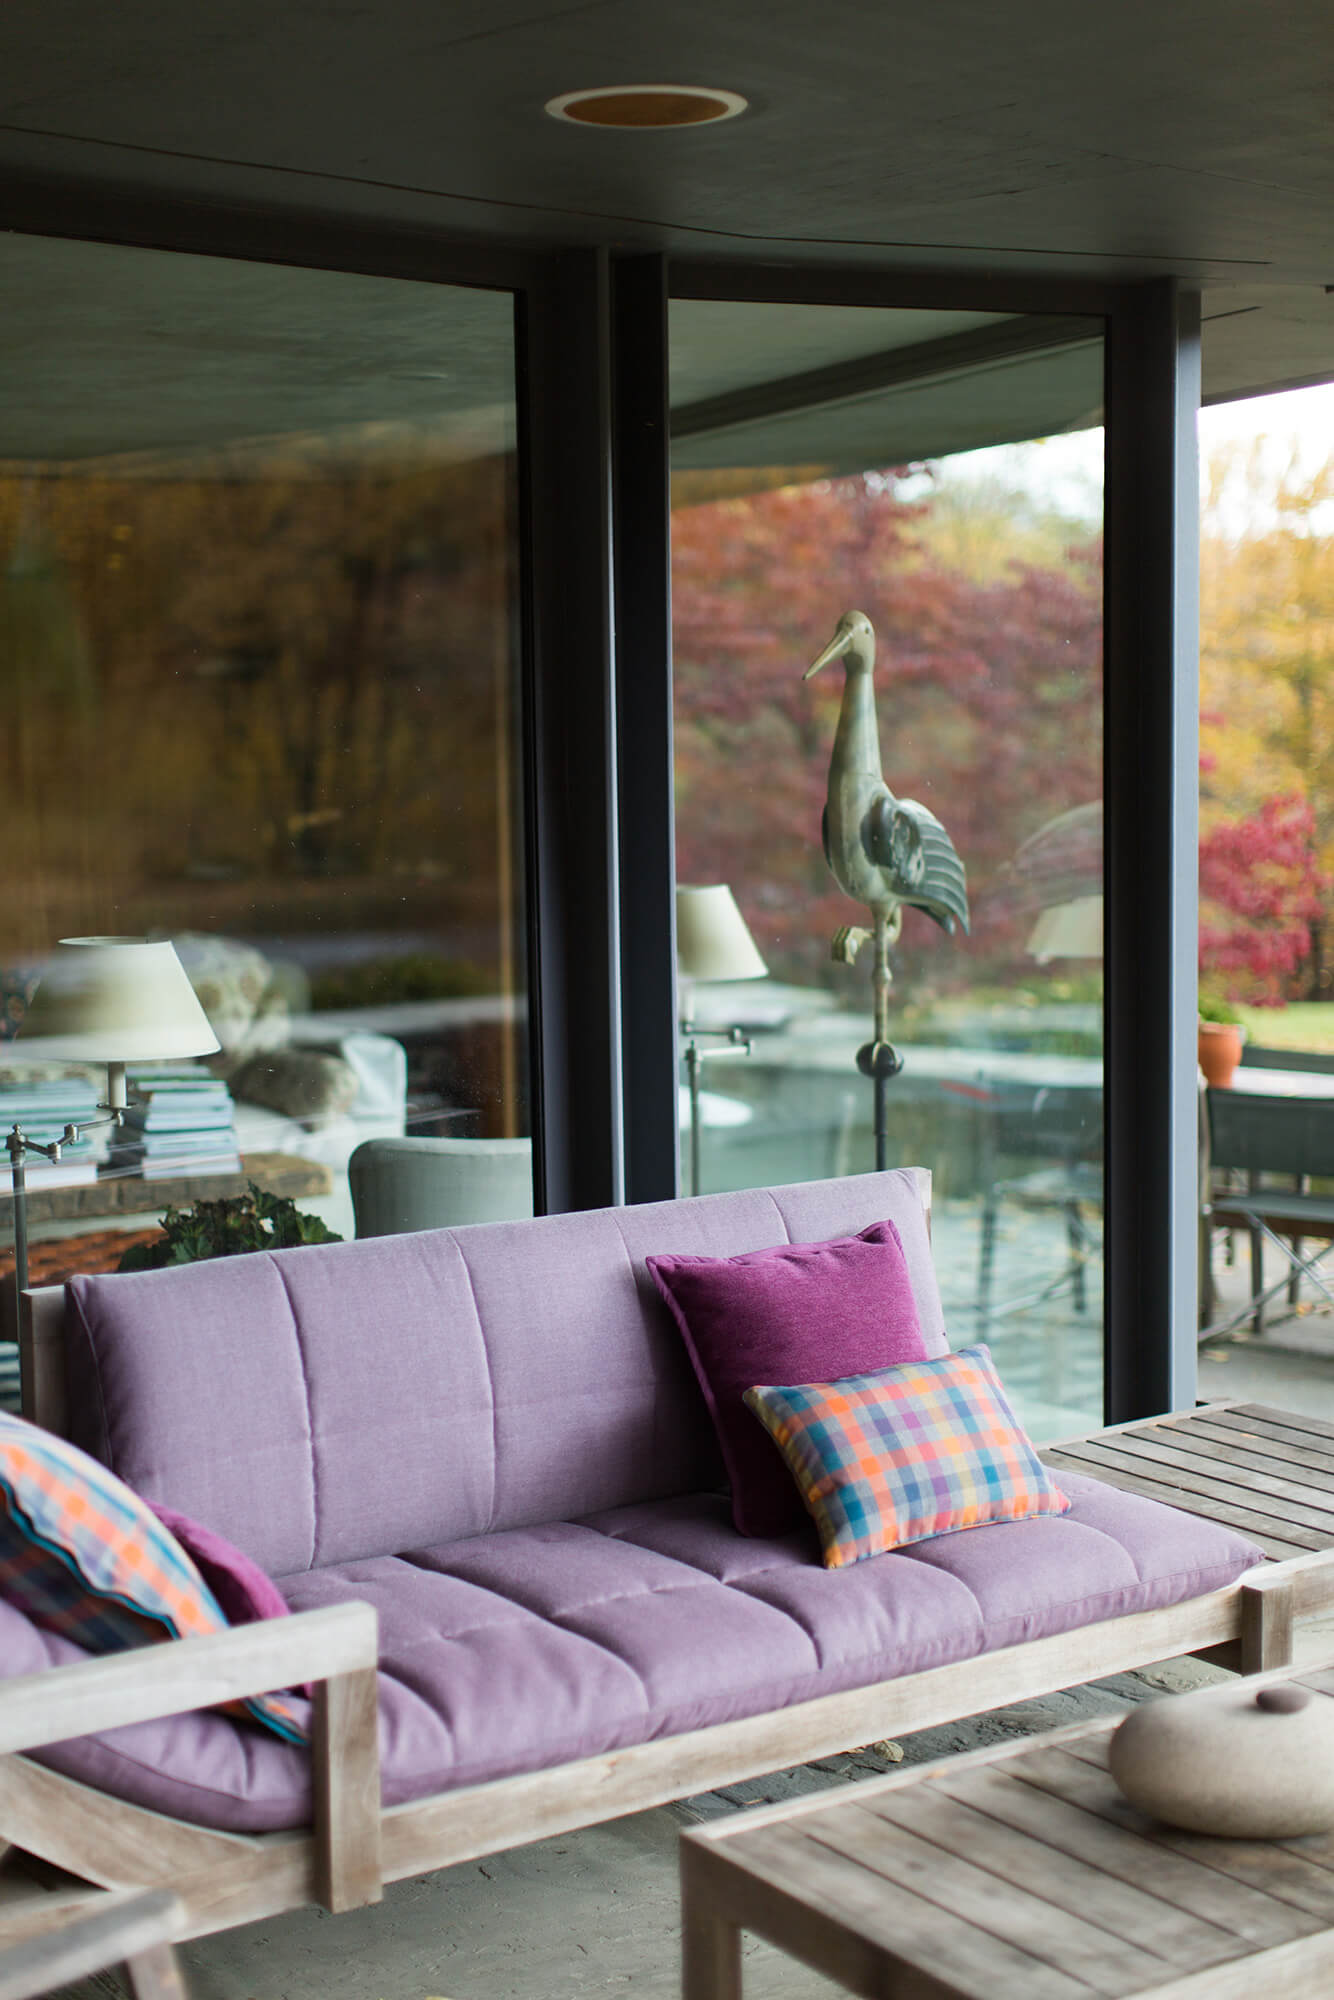 Patio With Sofa Featuring Cushions Made Using Purple Sunbrella Fabric And Bold Patterned Throw Pillows